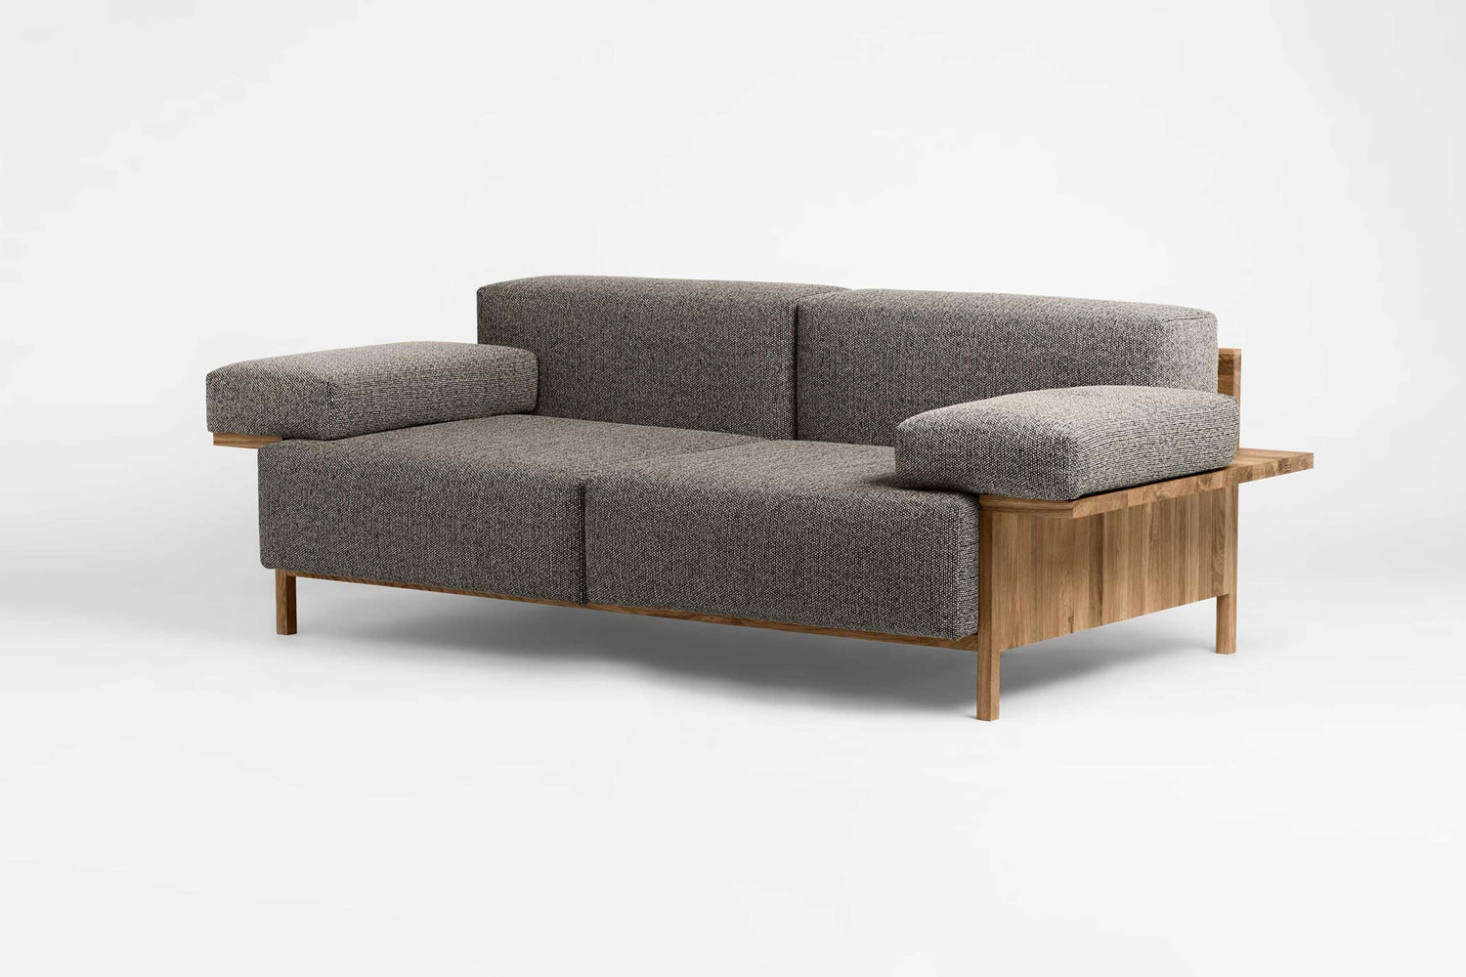 Sofa S 10 Easy Pieces Modern Wood Frame Sofas Remodelista